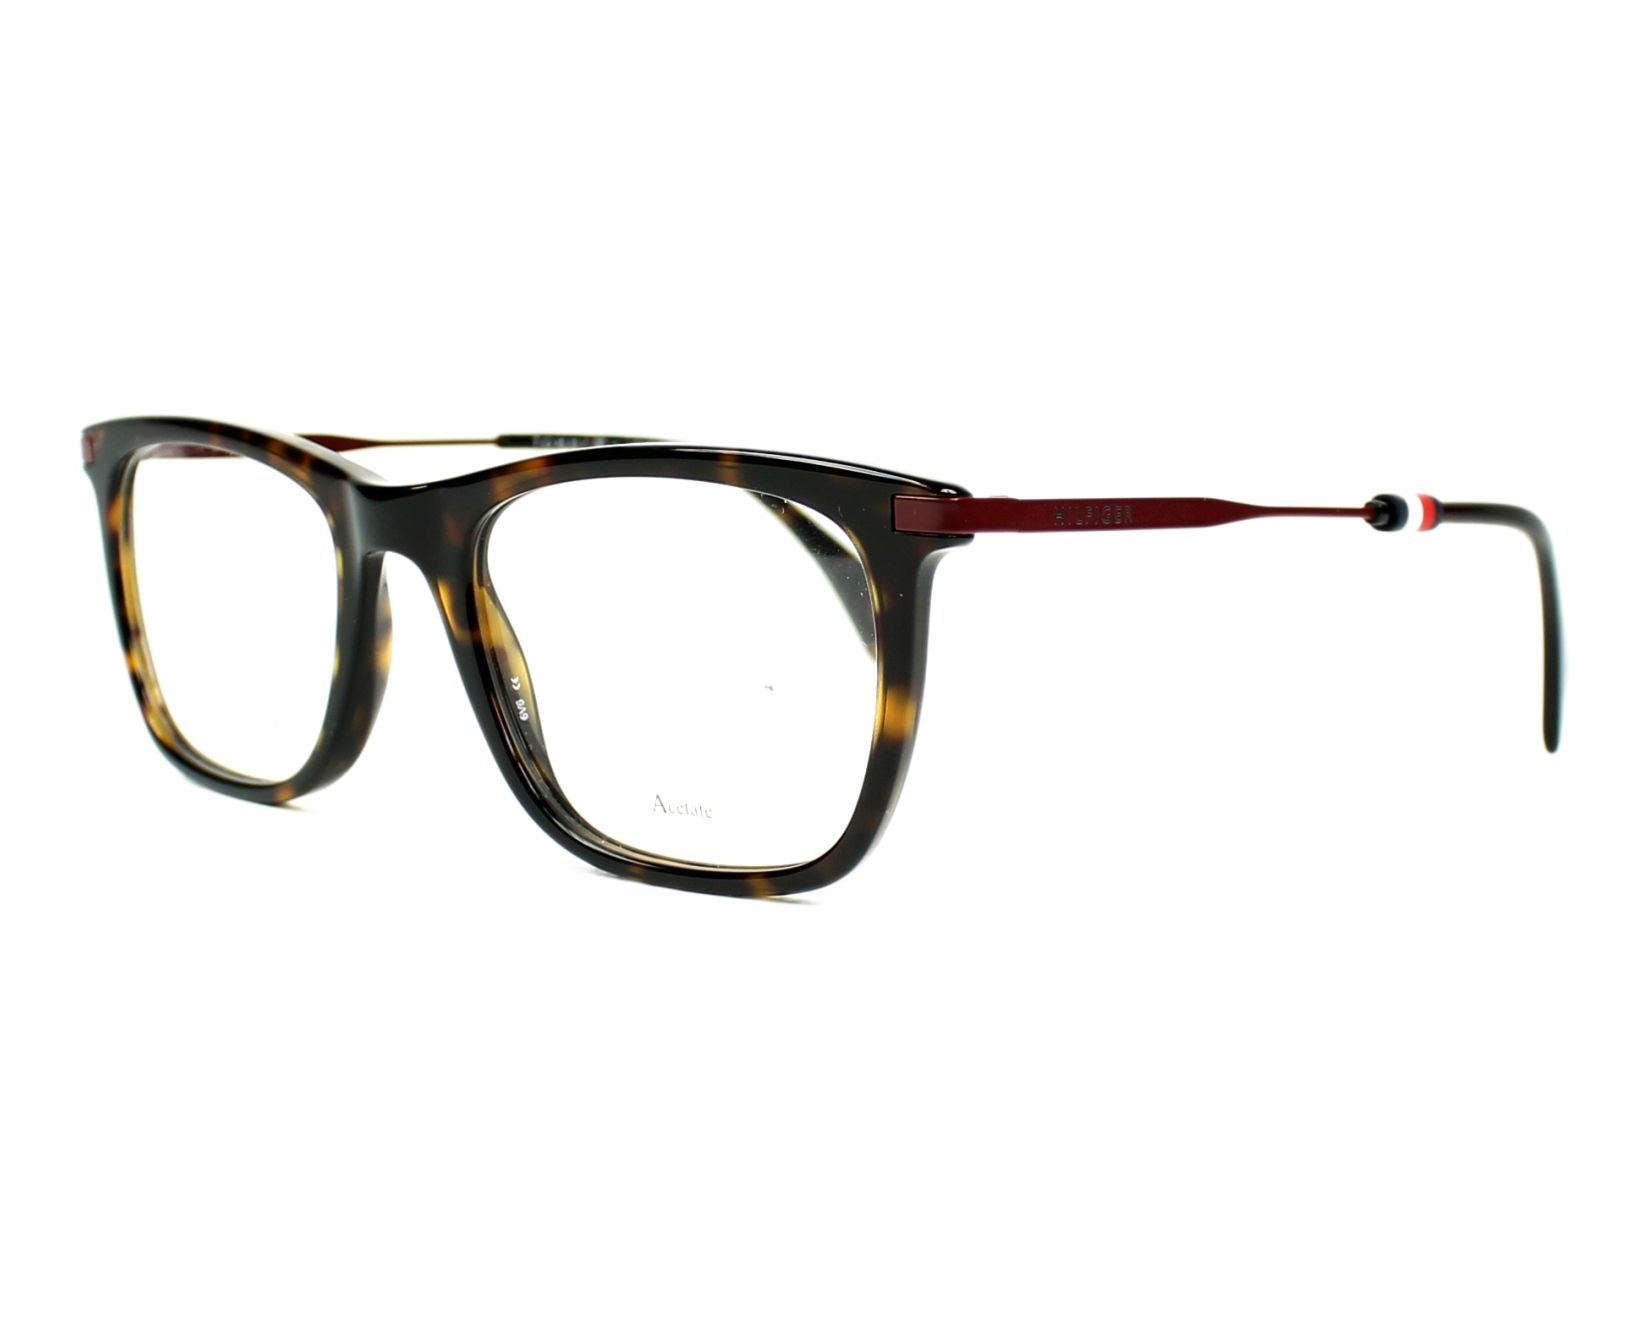 eyeglasses Tommy Hilfiger TH-1472 086 51-20 Havana profile view